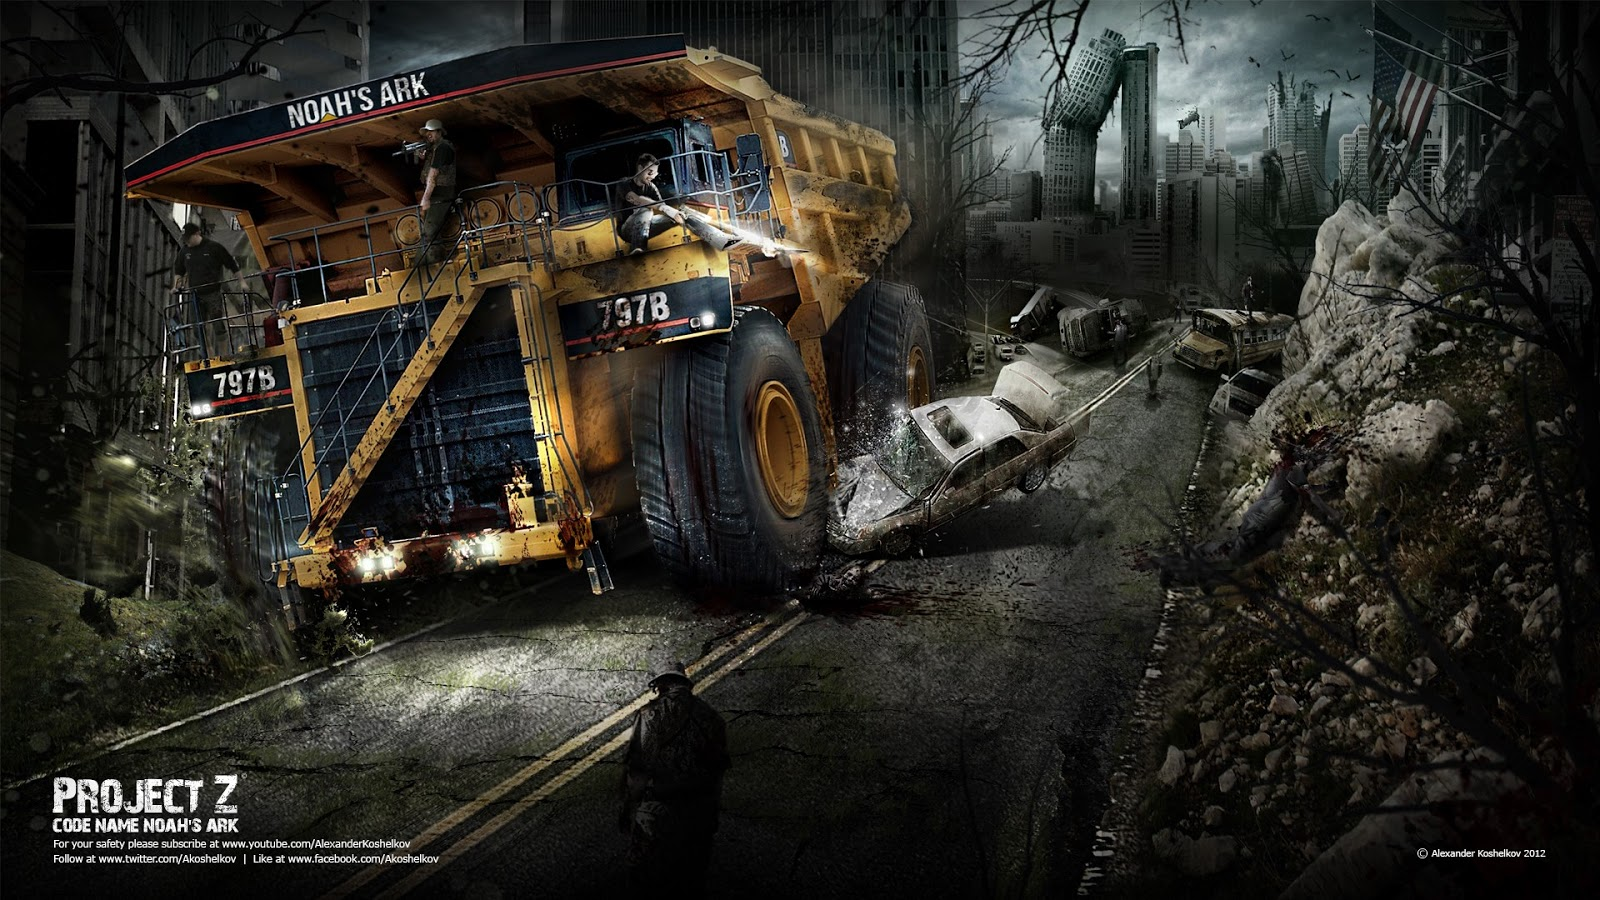 Project Z   The Zombie Apocalypse Desktop Wallpapers and Backgrounds 1600x900